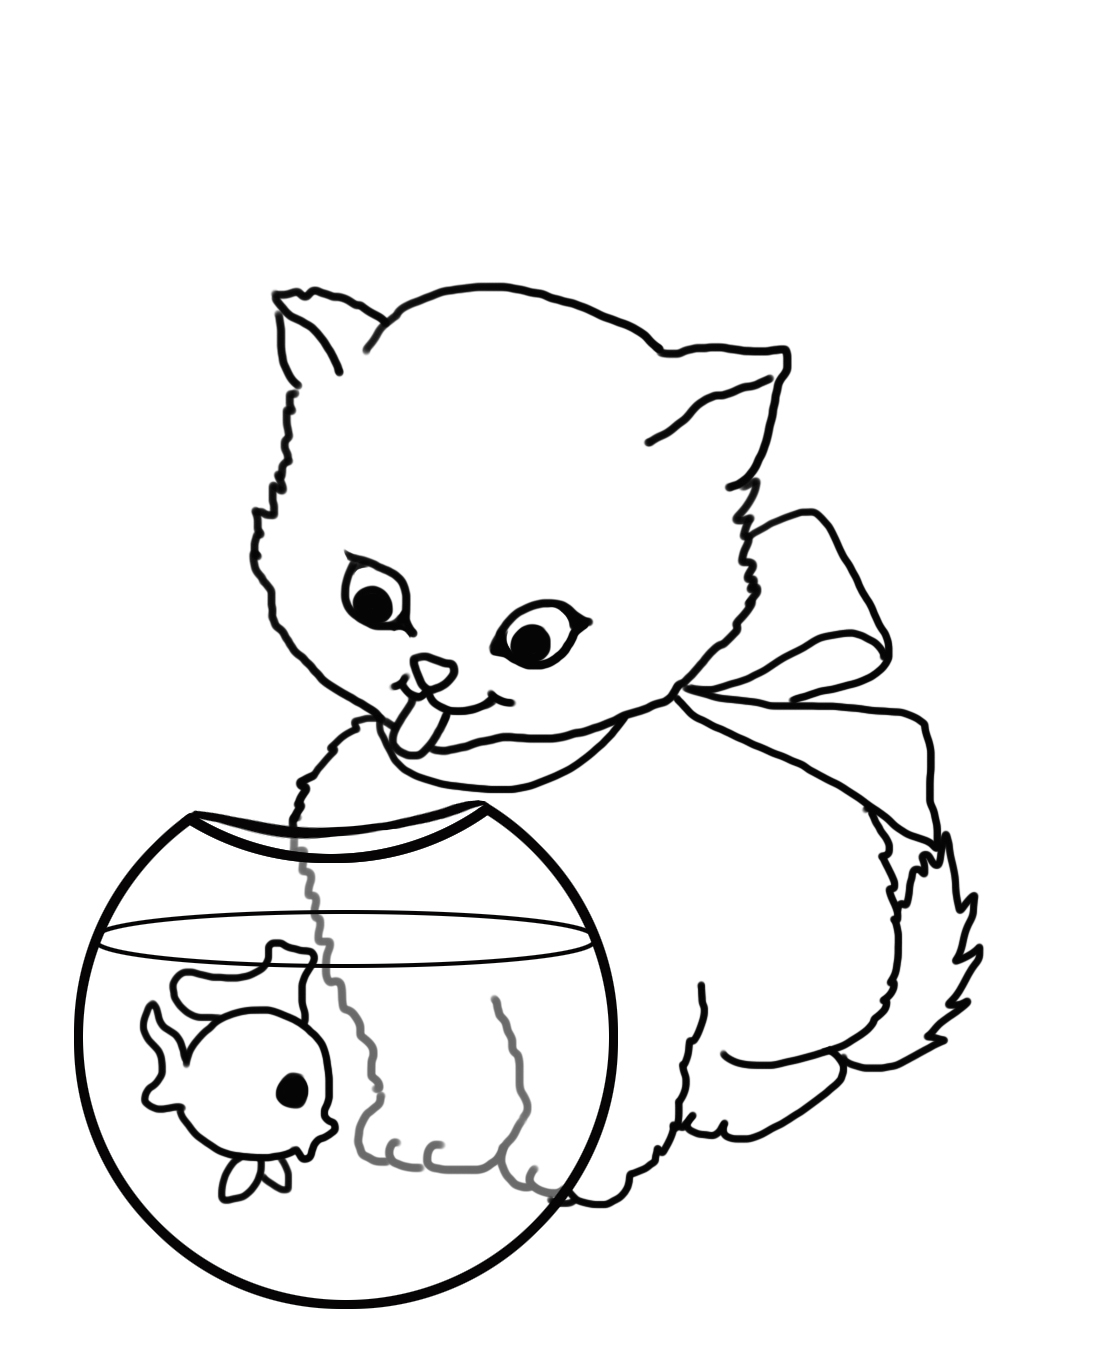 cat looking at fish bowl